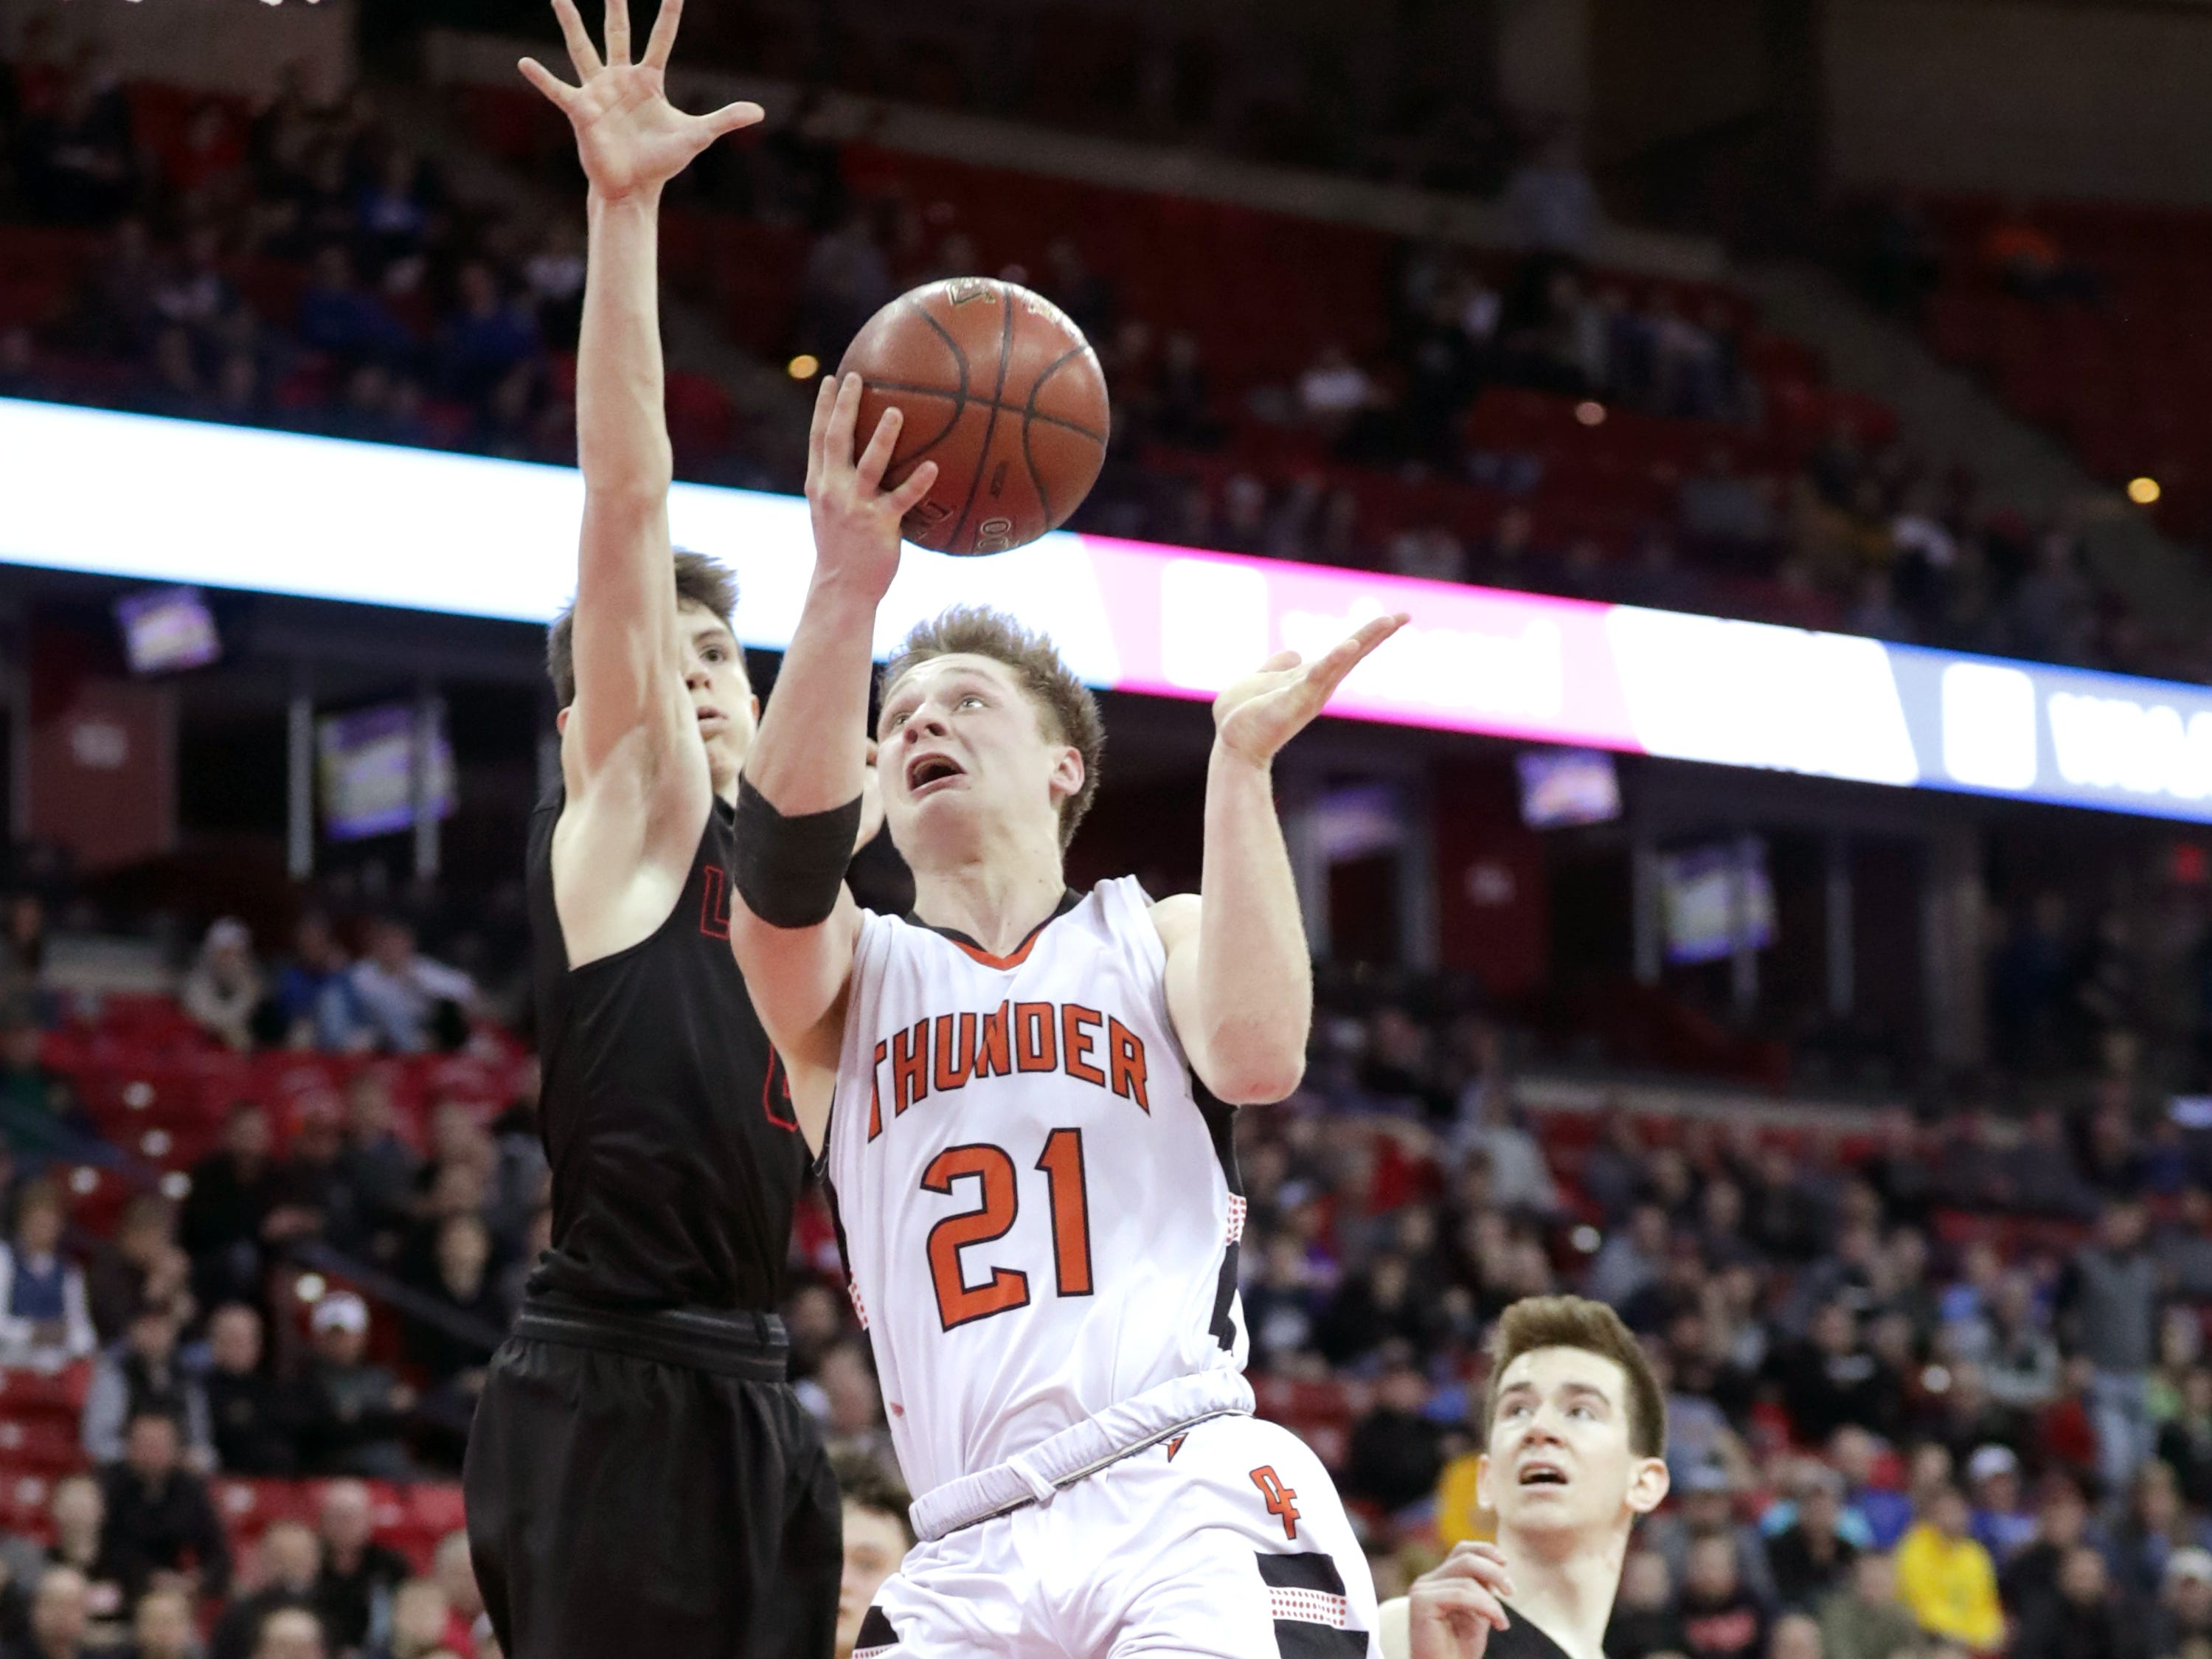 Lourdes Academy's #0 Hayden Jones drives against Osseo-Fairchild High School's #21 Logan Mulhern during their WIAA Division 4 boys basketball state semifinal on Thursday, March 14, 2019, at the Kohl Center in Madison, Wis. Lourdes defeated Osseo-Fairchild 70-68.